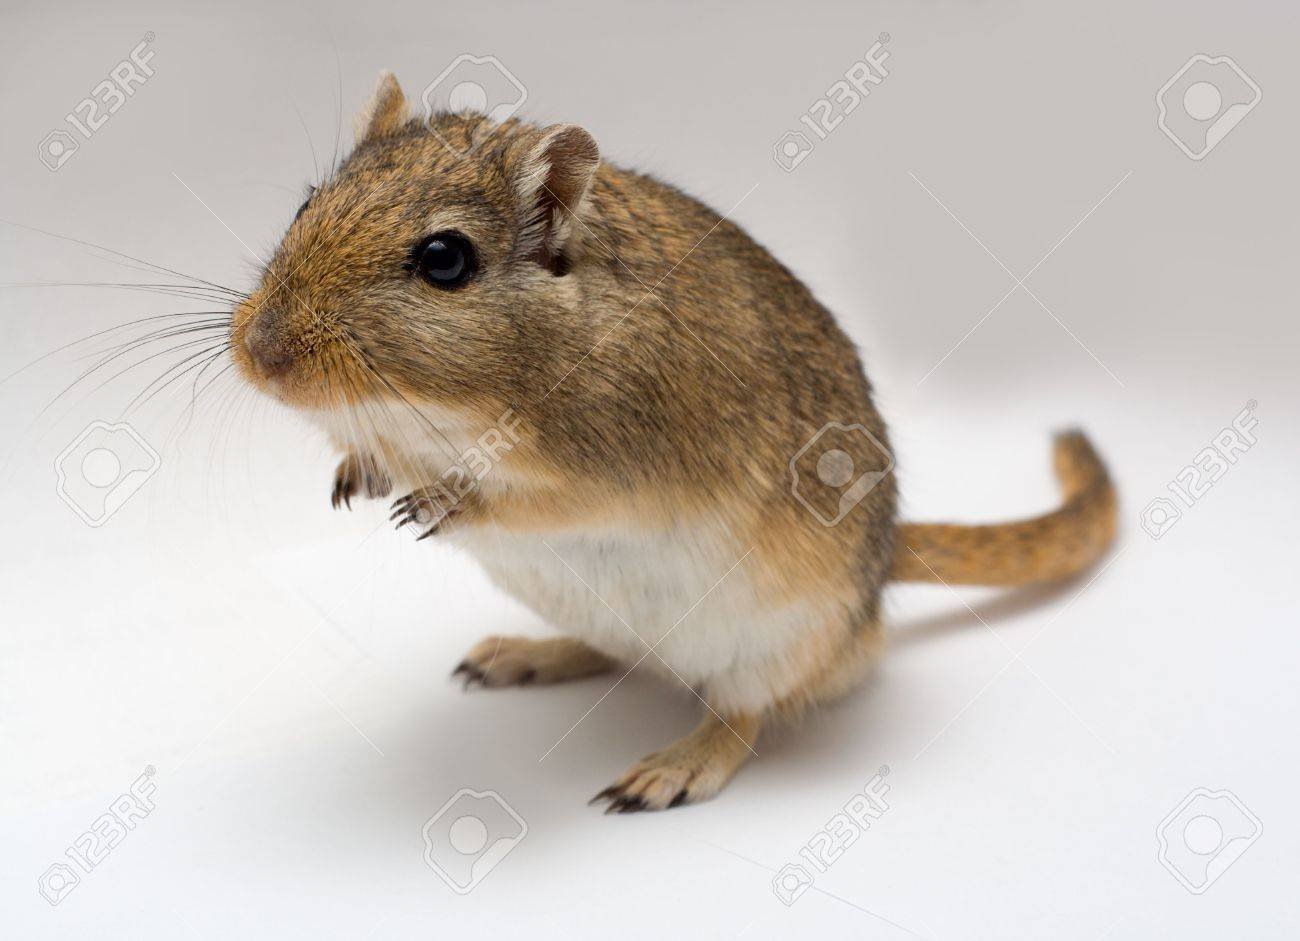 Stock Photo - home pet...